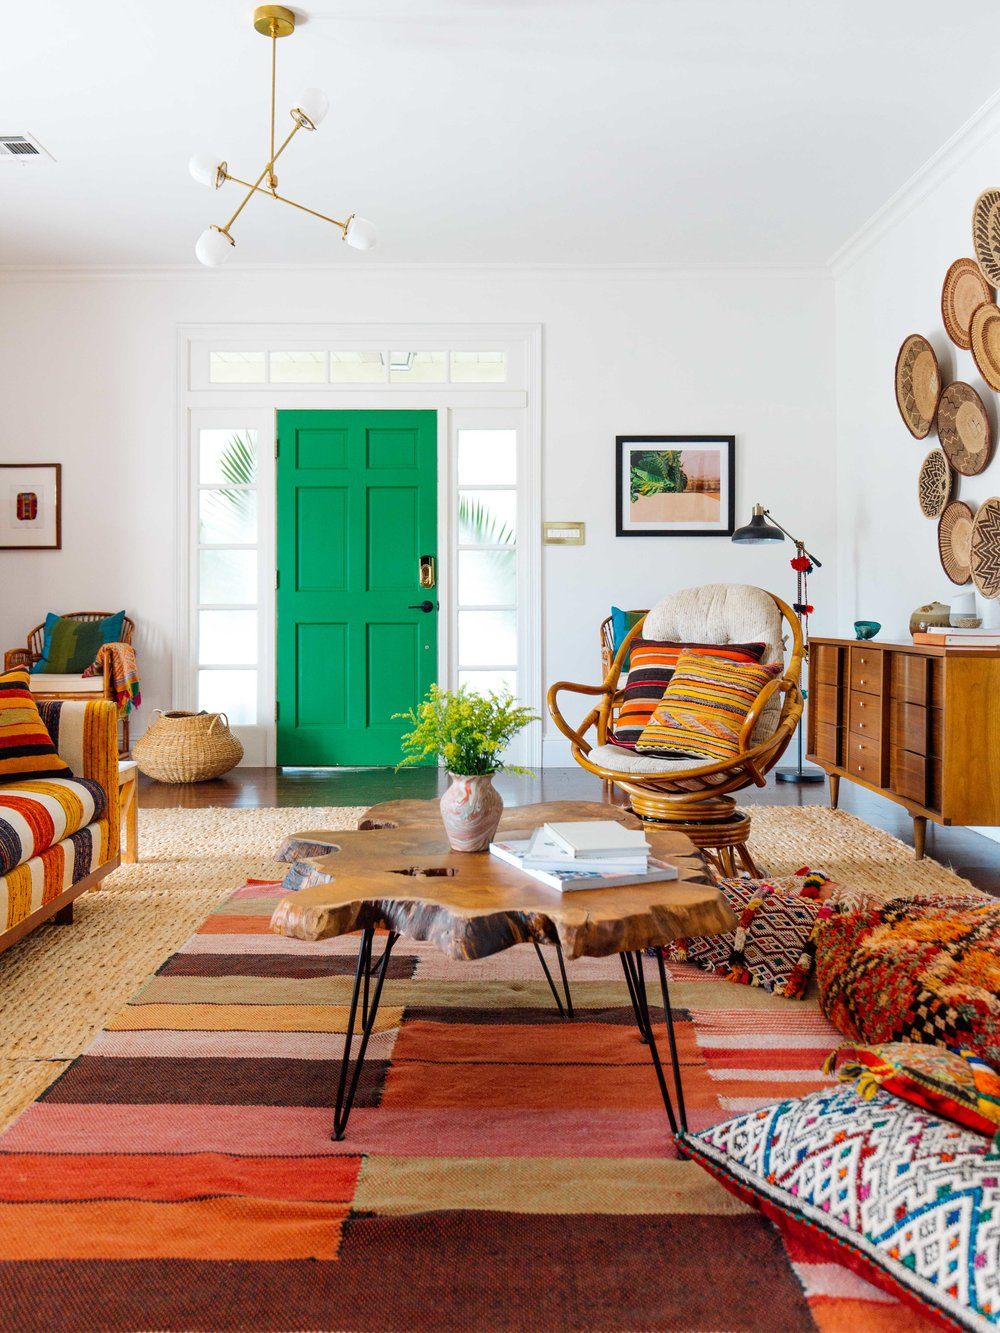 Its super eclectic with a nice mix of different textiles but mostly brown and tan shades the charlie rug is such a great addition to that space